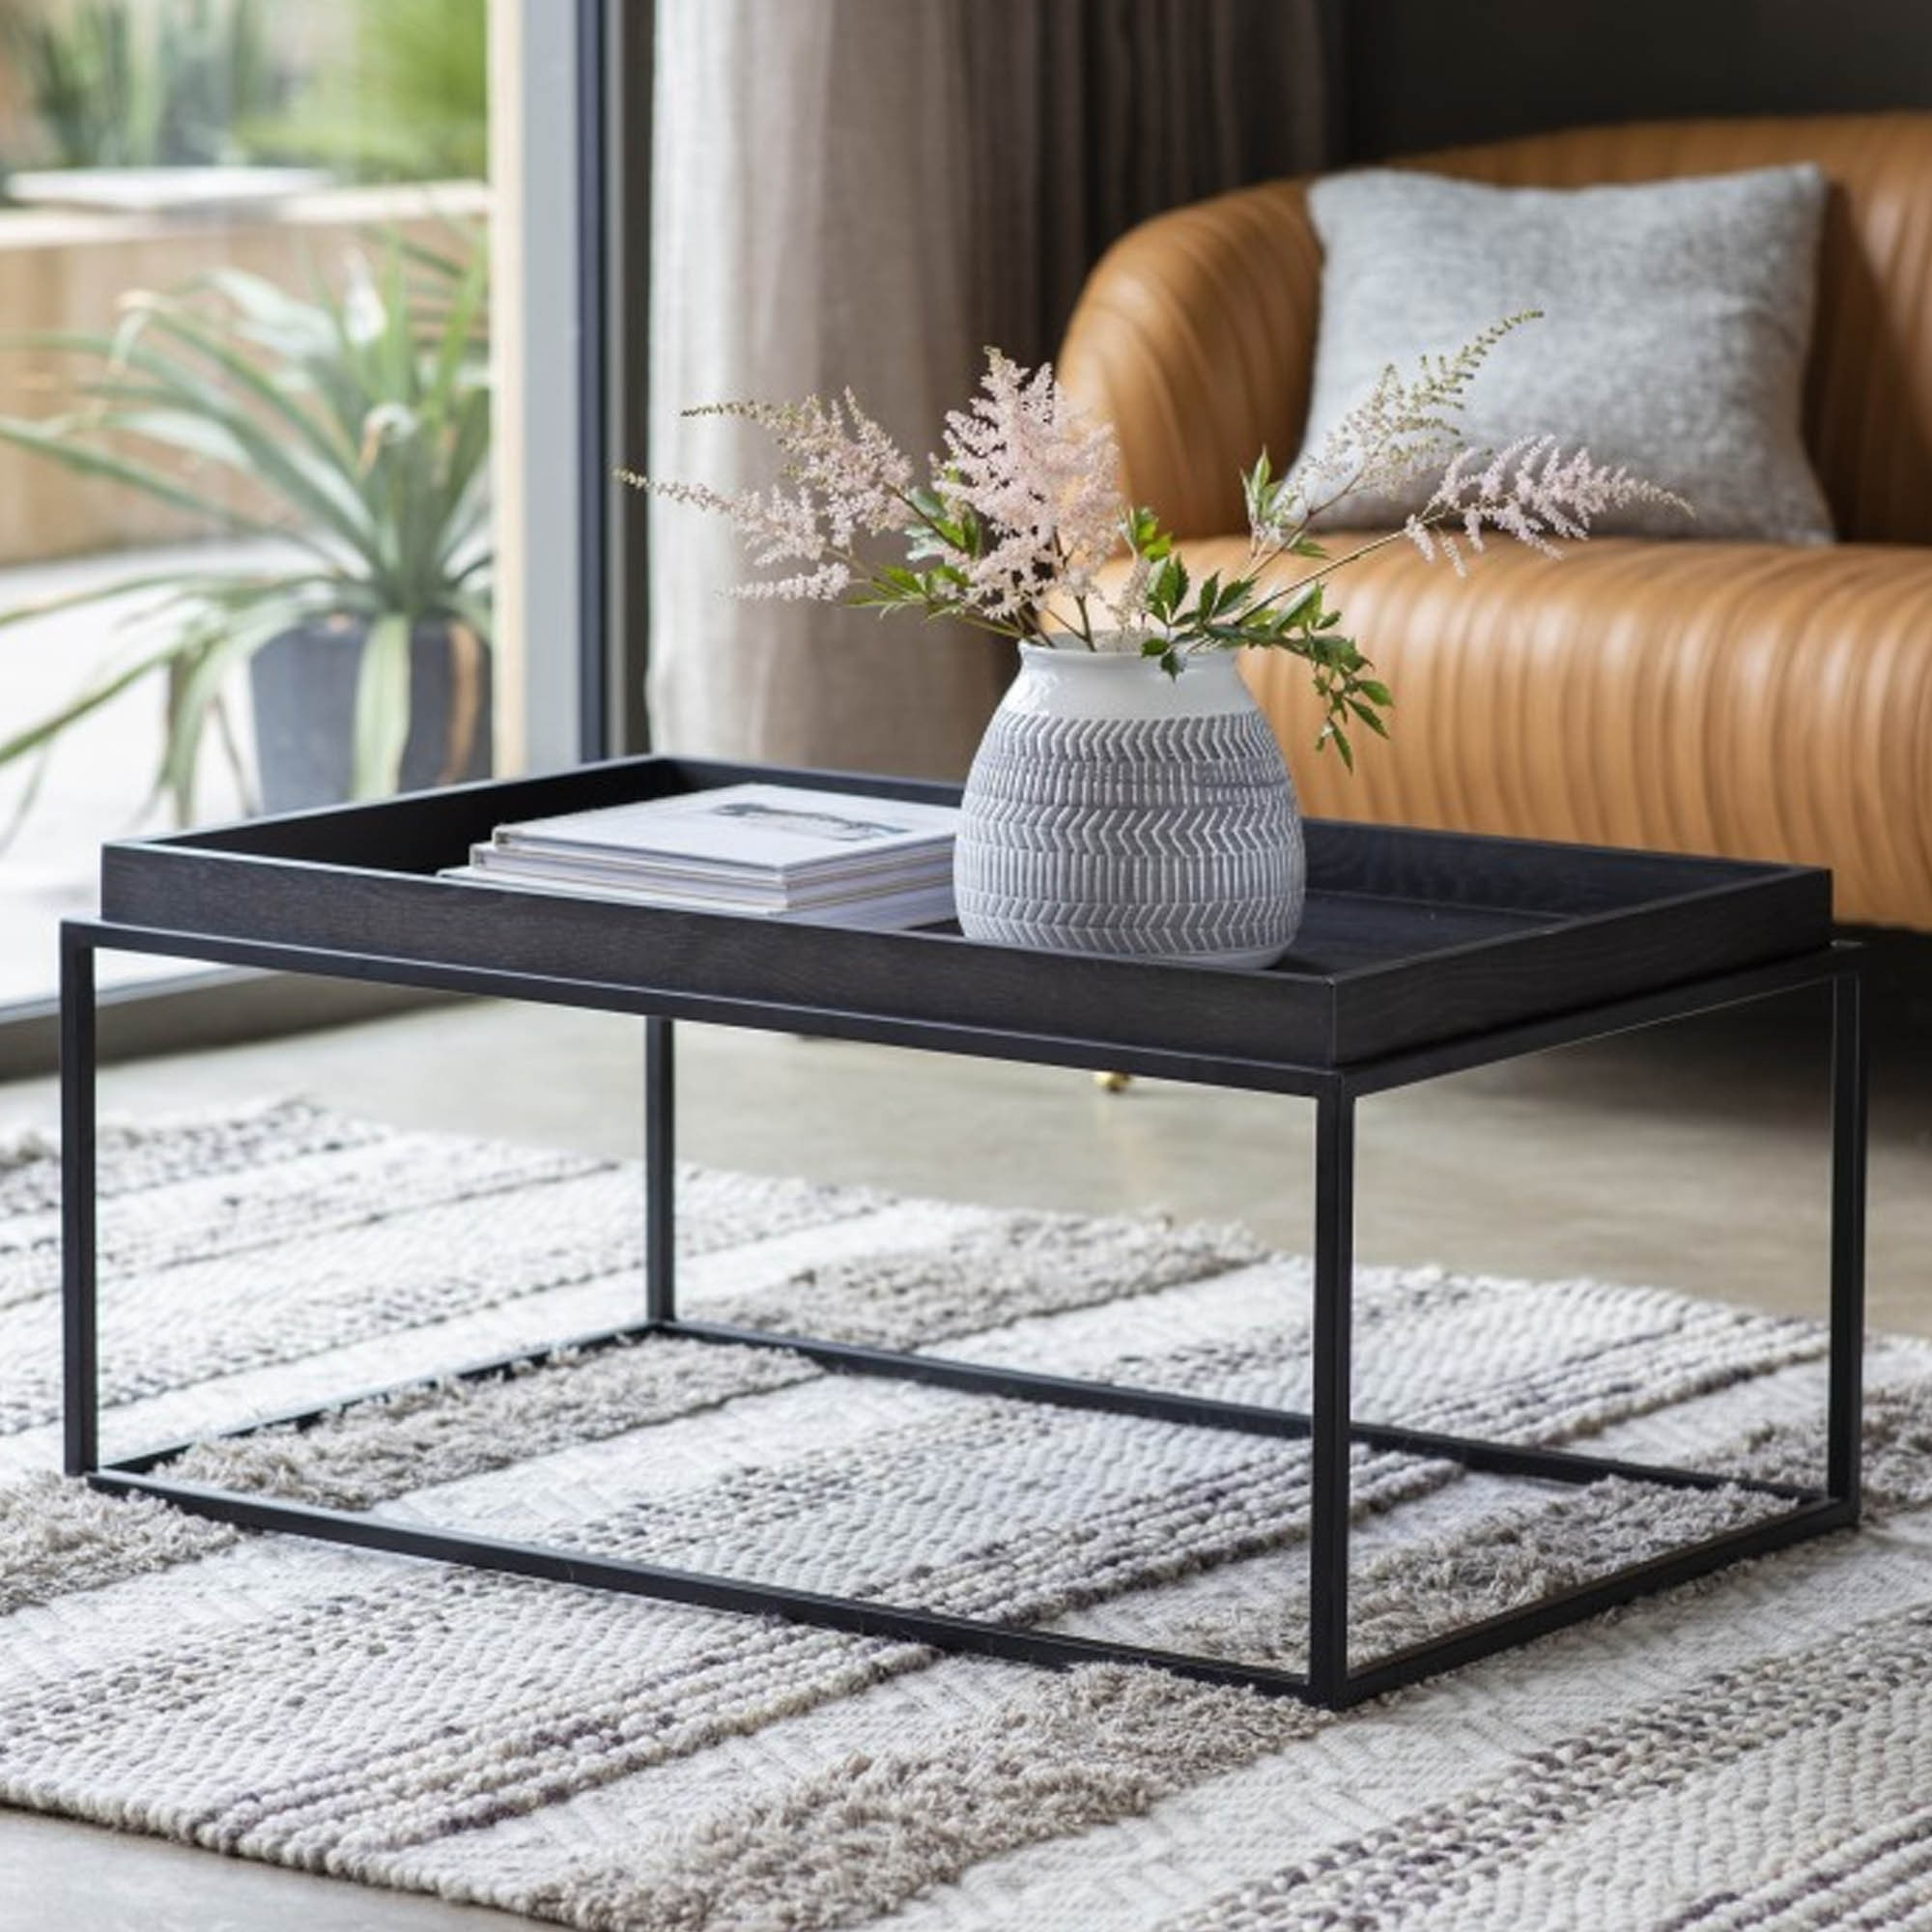 Forden Tray Coffee Table Black Modern Coffee Table Industrial Coffee Table